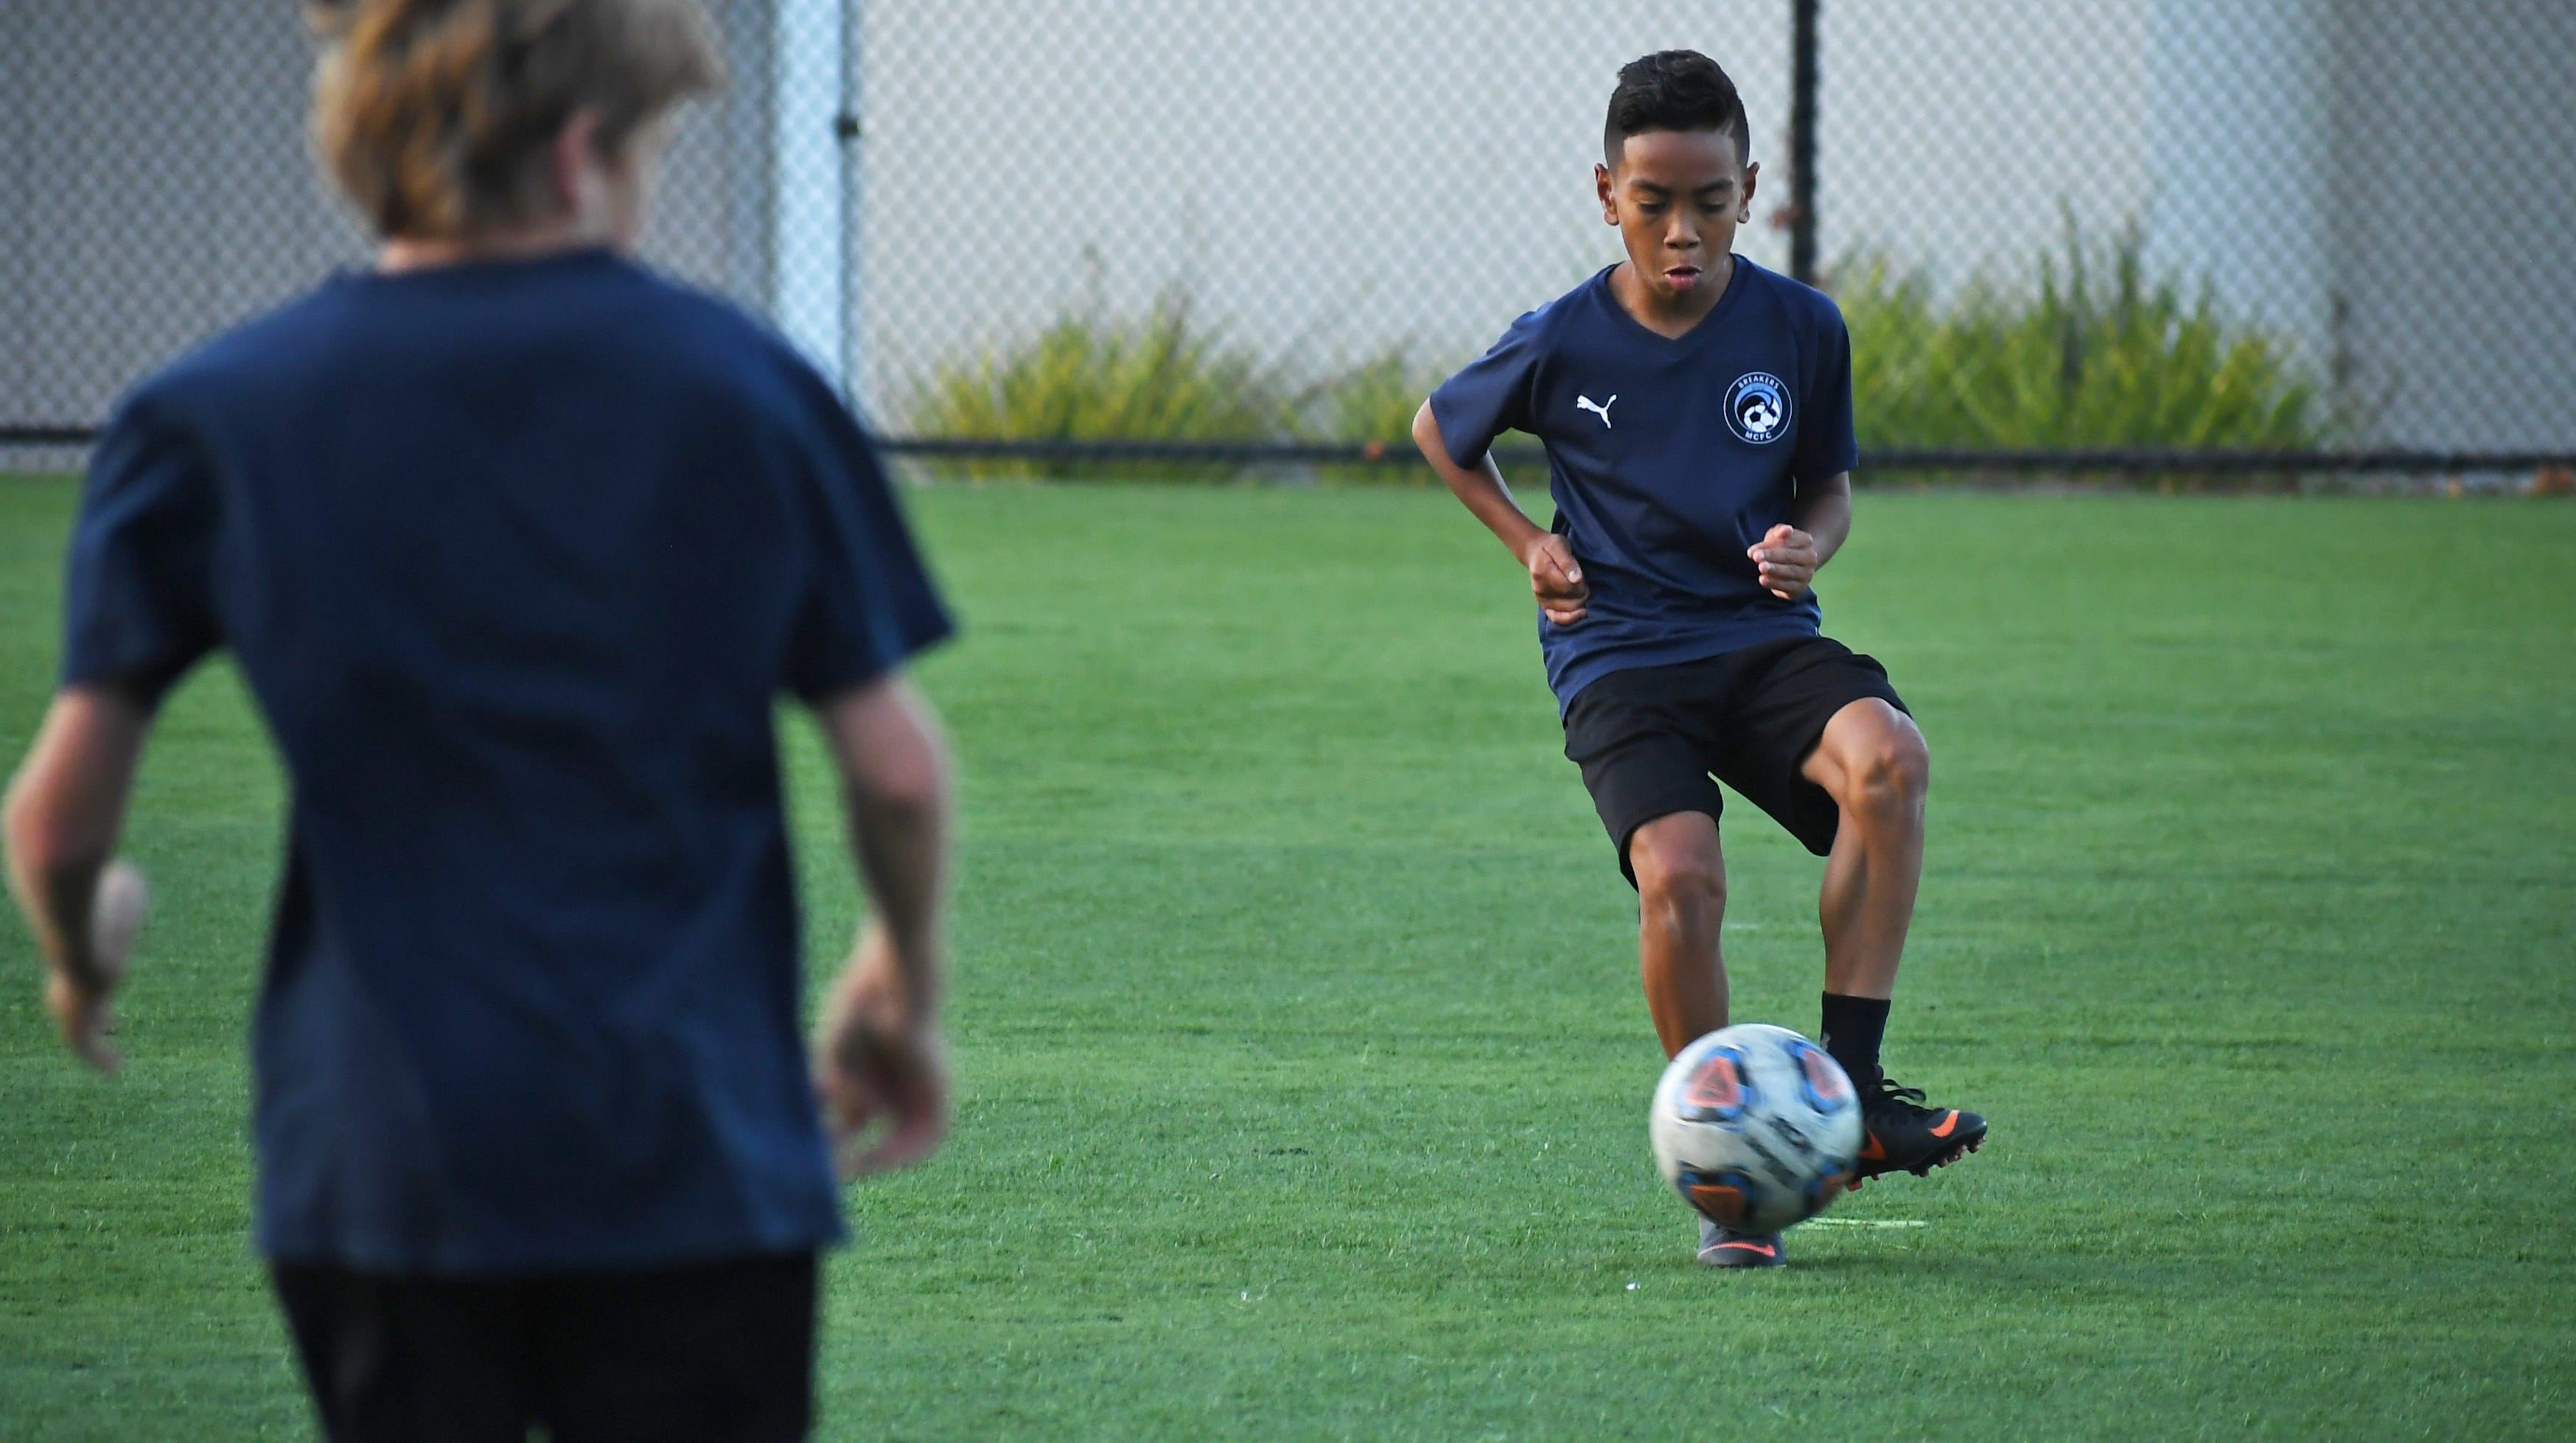 Sekou Mathews (right) has played soccer since age three and excels on the pitch. The 12-year-old recently garnered attention from FC Barcelona, one of the most popular clubs in the world.